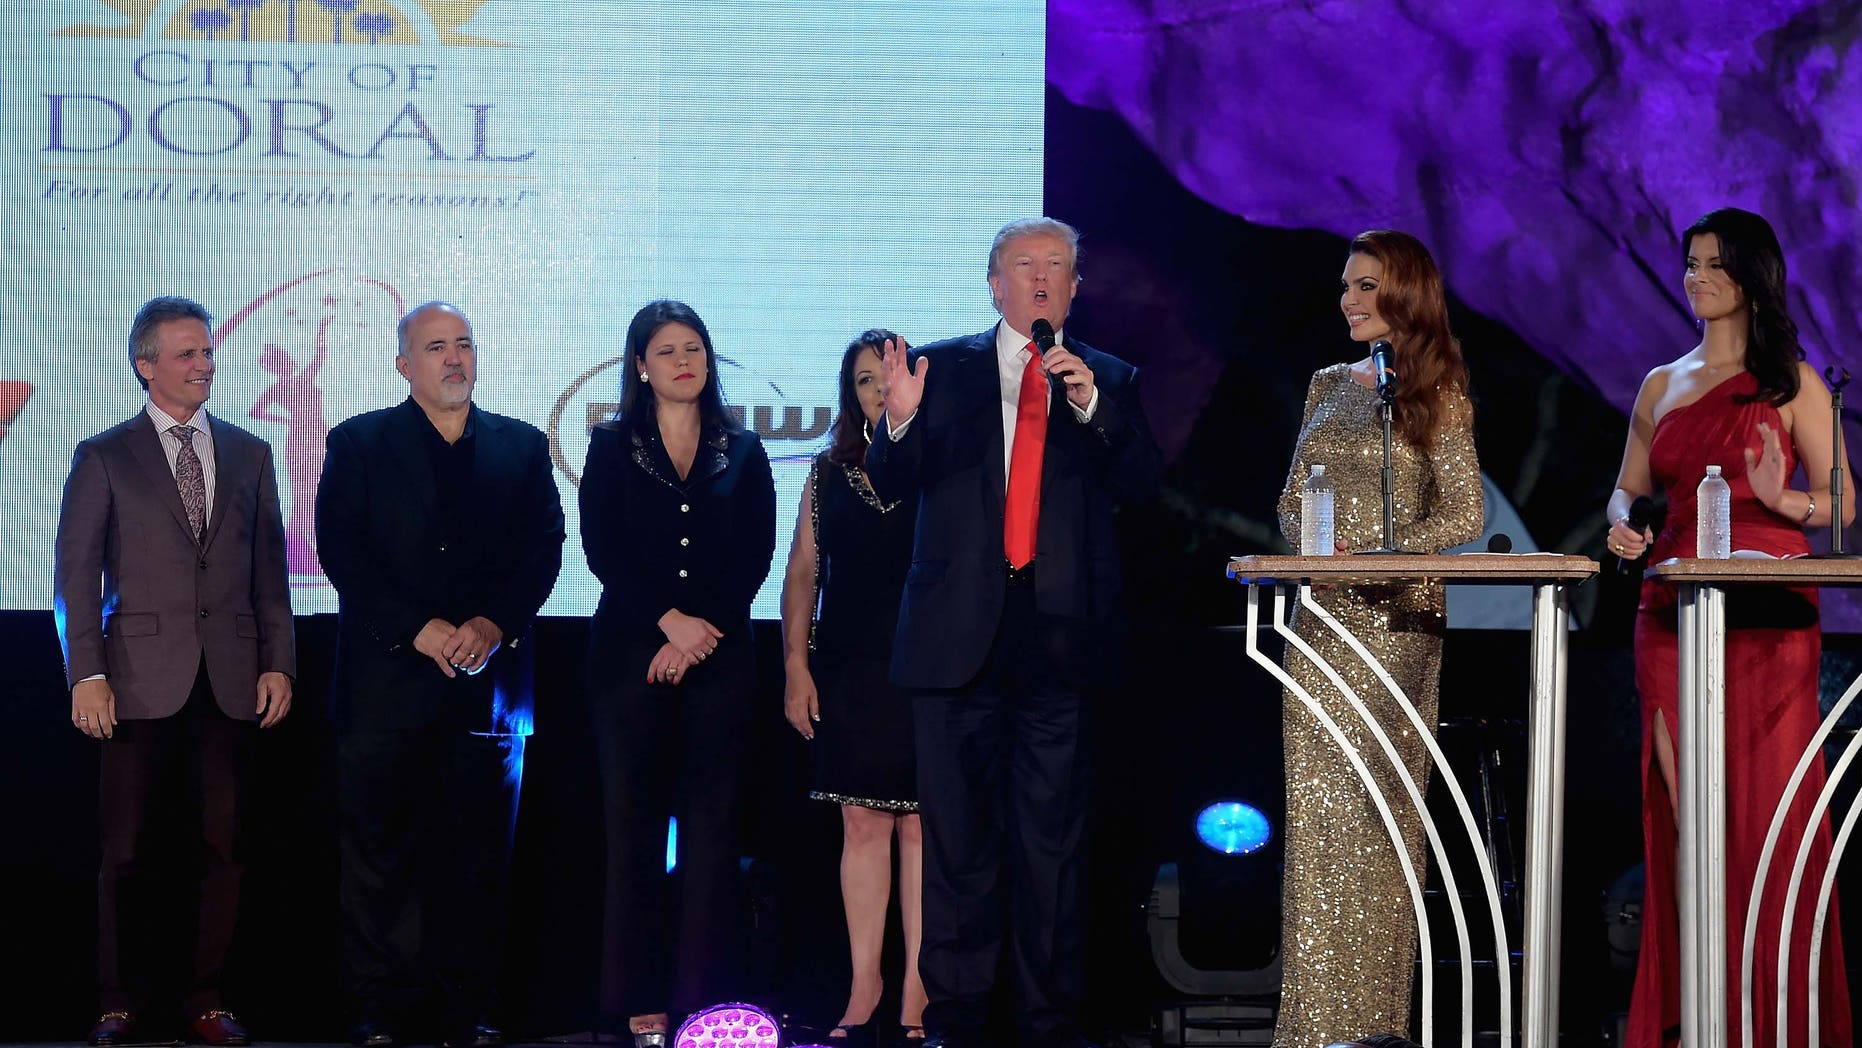 DORAL, FL - JANUARY 09:  Donald Trump,Barbara Palacios and Roxanne Vargas attends Miss Universe Welcome Event and Reception at Downtown Doral Park on January 9, 2015 in Doral, Florida.  (Photo by Gustavo Caballero/Getty Images)